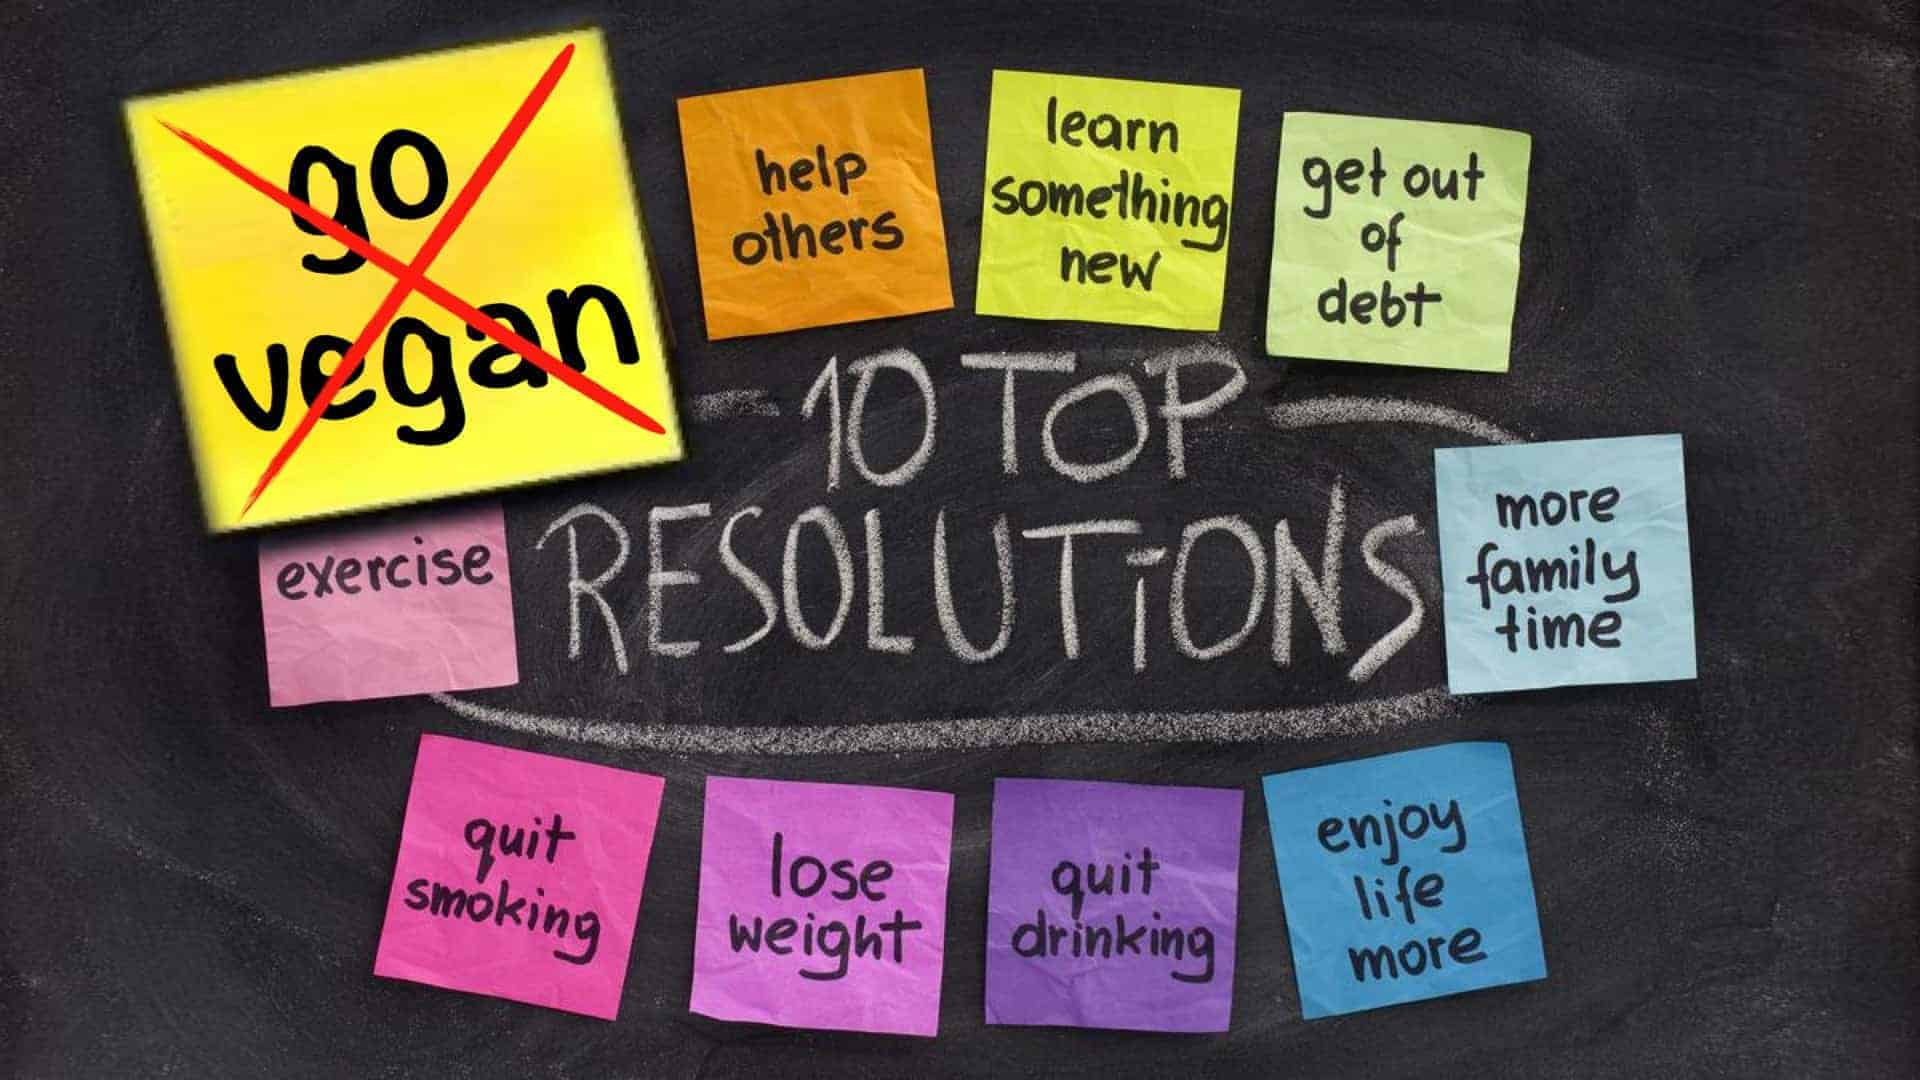 """A blackboard is show with a number of post-it notes attached. The notes list possible different resolutions: help others, quit drinking, etc. Written in the center of the board, in chalk, are the words """"10 top resolutions"""". The most prominent post-it note has a red cross through it. Underneath the cross the words """"Go Vegan"""" can be seen."""